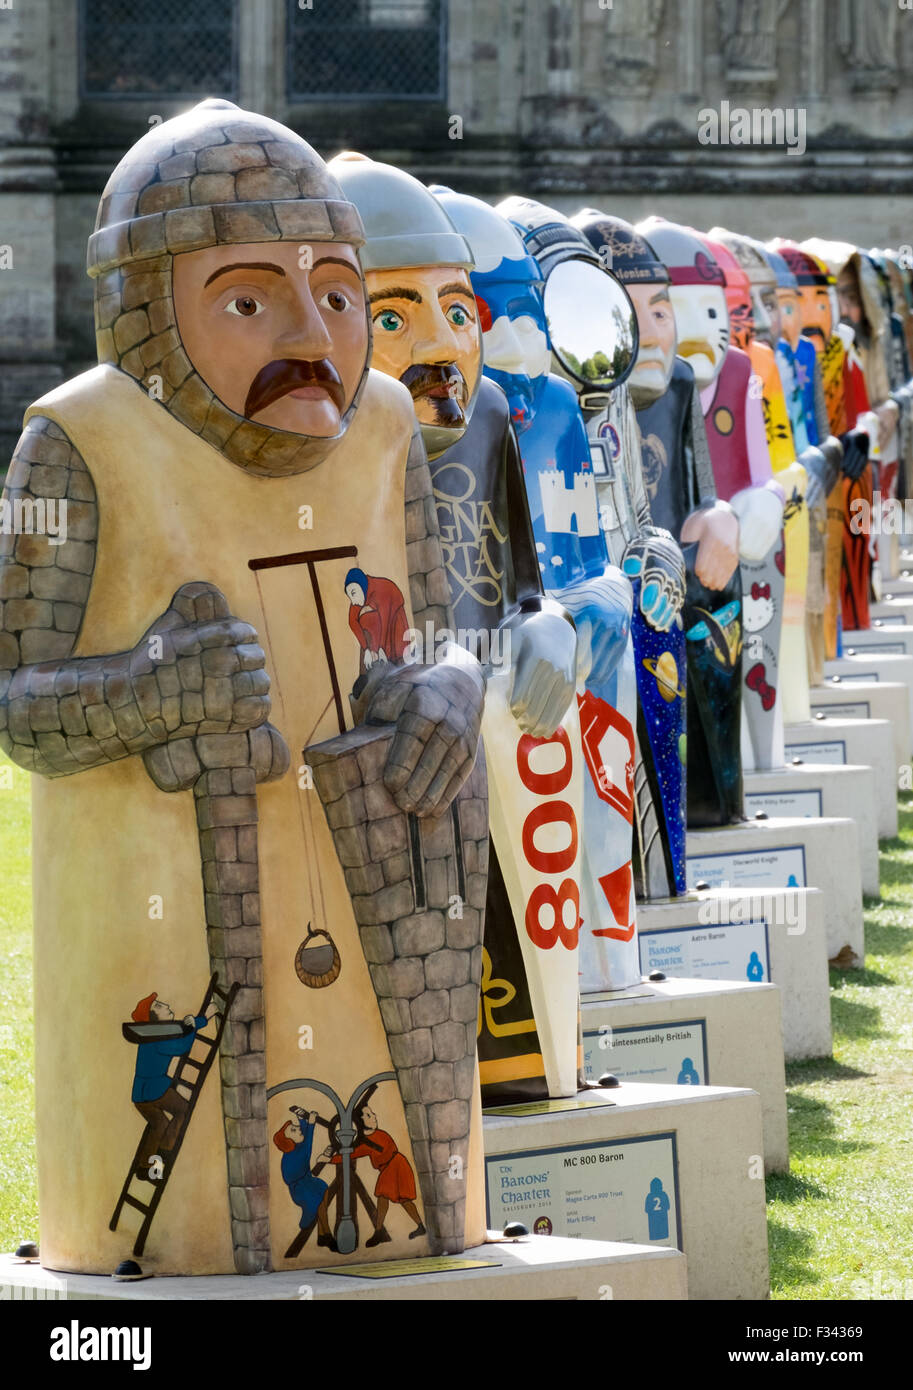 Salisbury Barons pictured outside Salisbury Cathedral. The Barons mark 800 years since the sealing of Magna Carta. - Stock Image